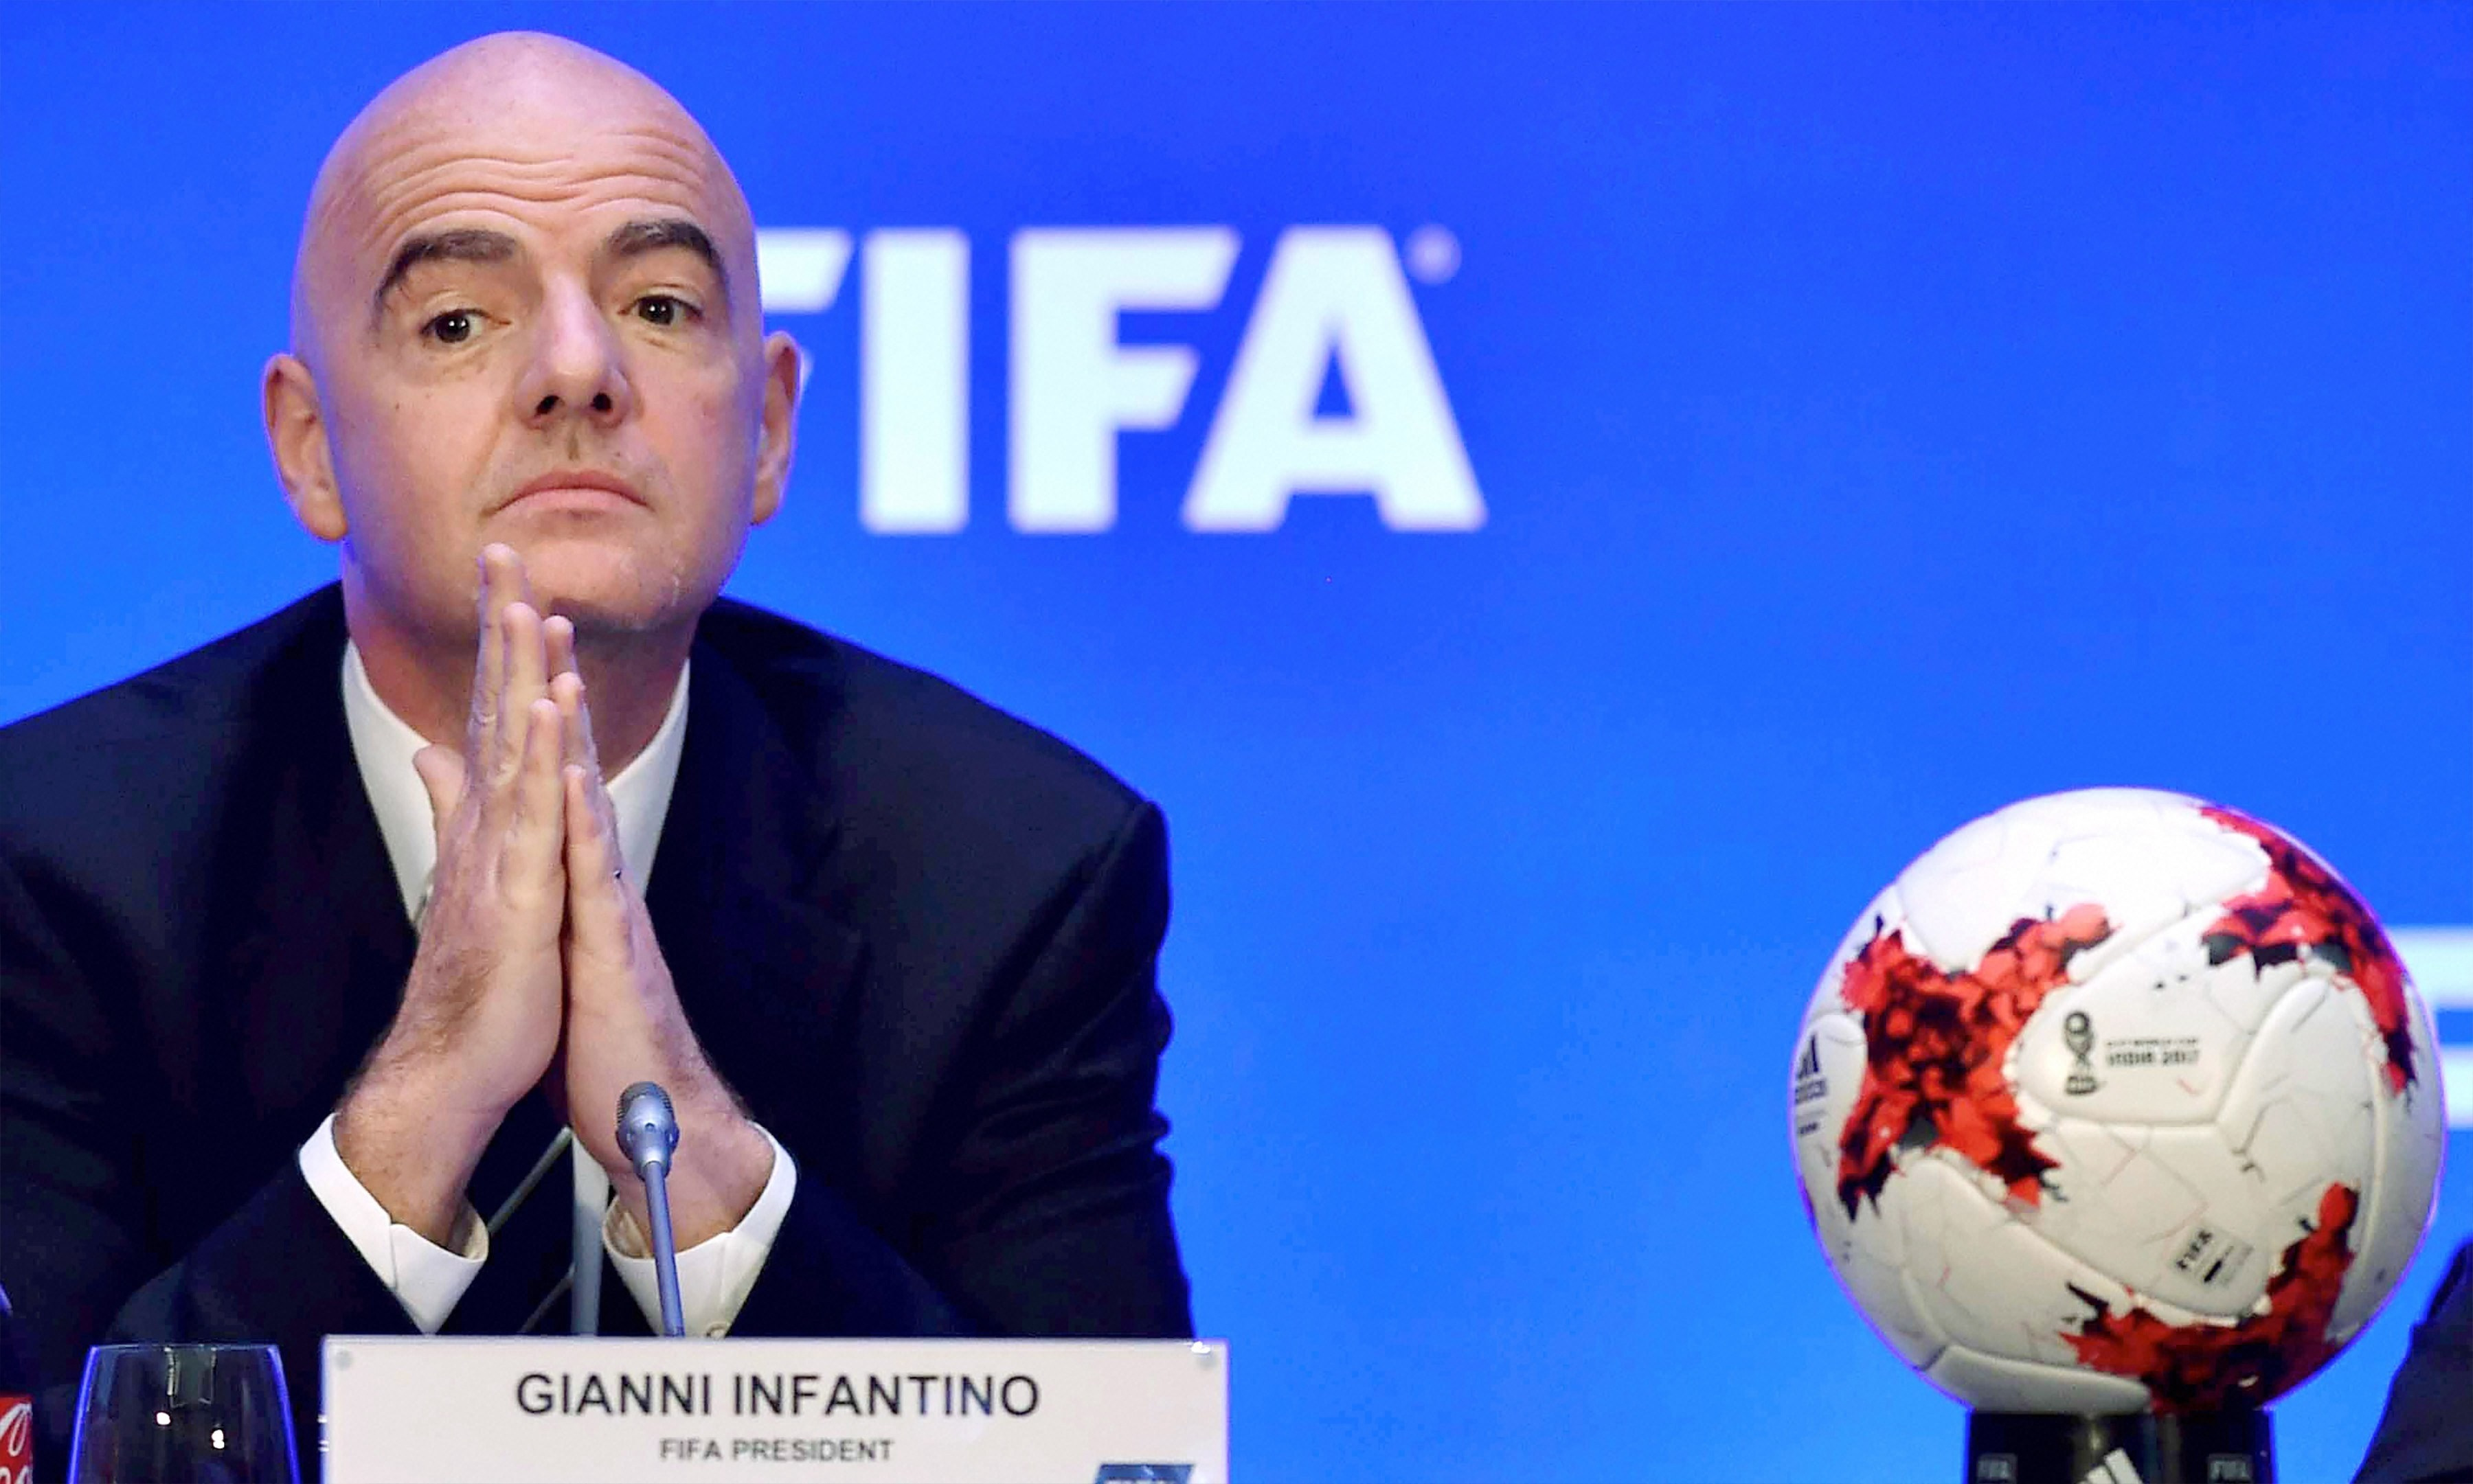 Fifa President Gianni Infantino is believed to strongly support the North American bid (Image: AFP)